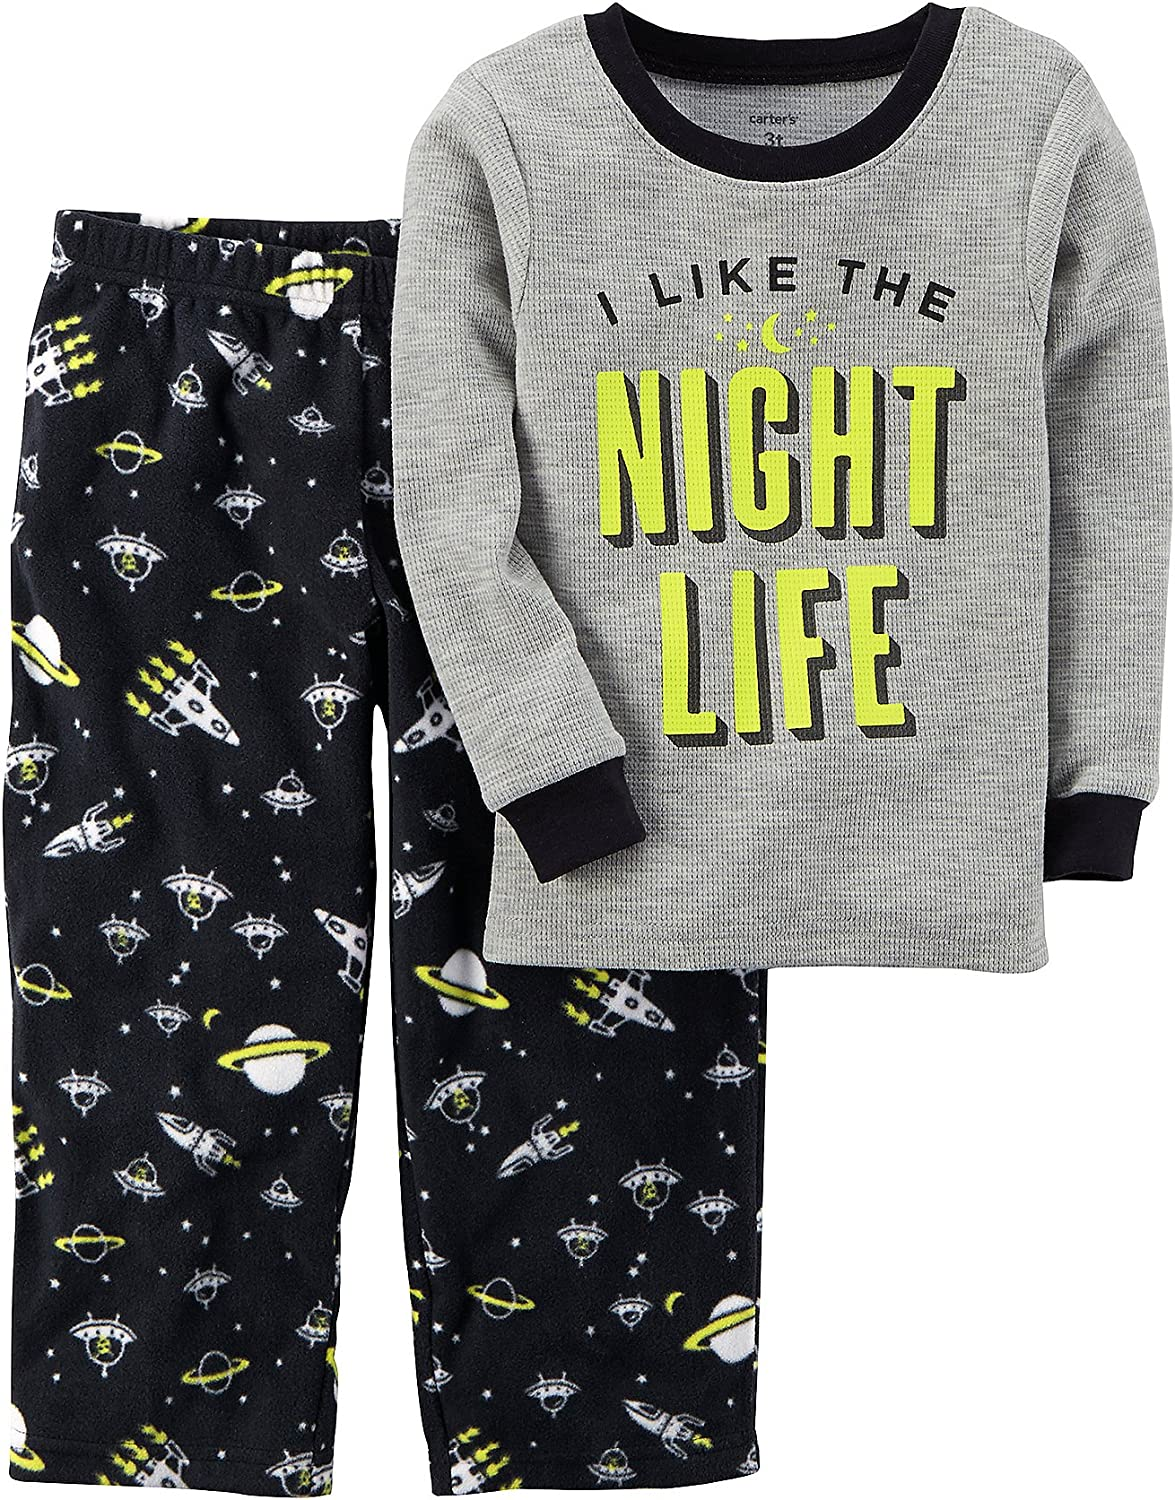 Carters Boys 12M-12 2 Piece Glow-in-The-Dark Cotton Pajamas 18 Months